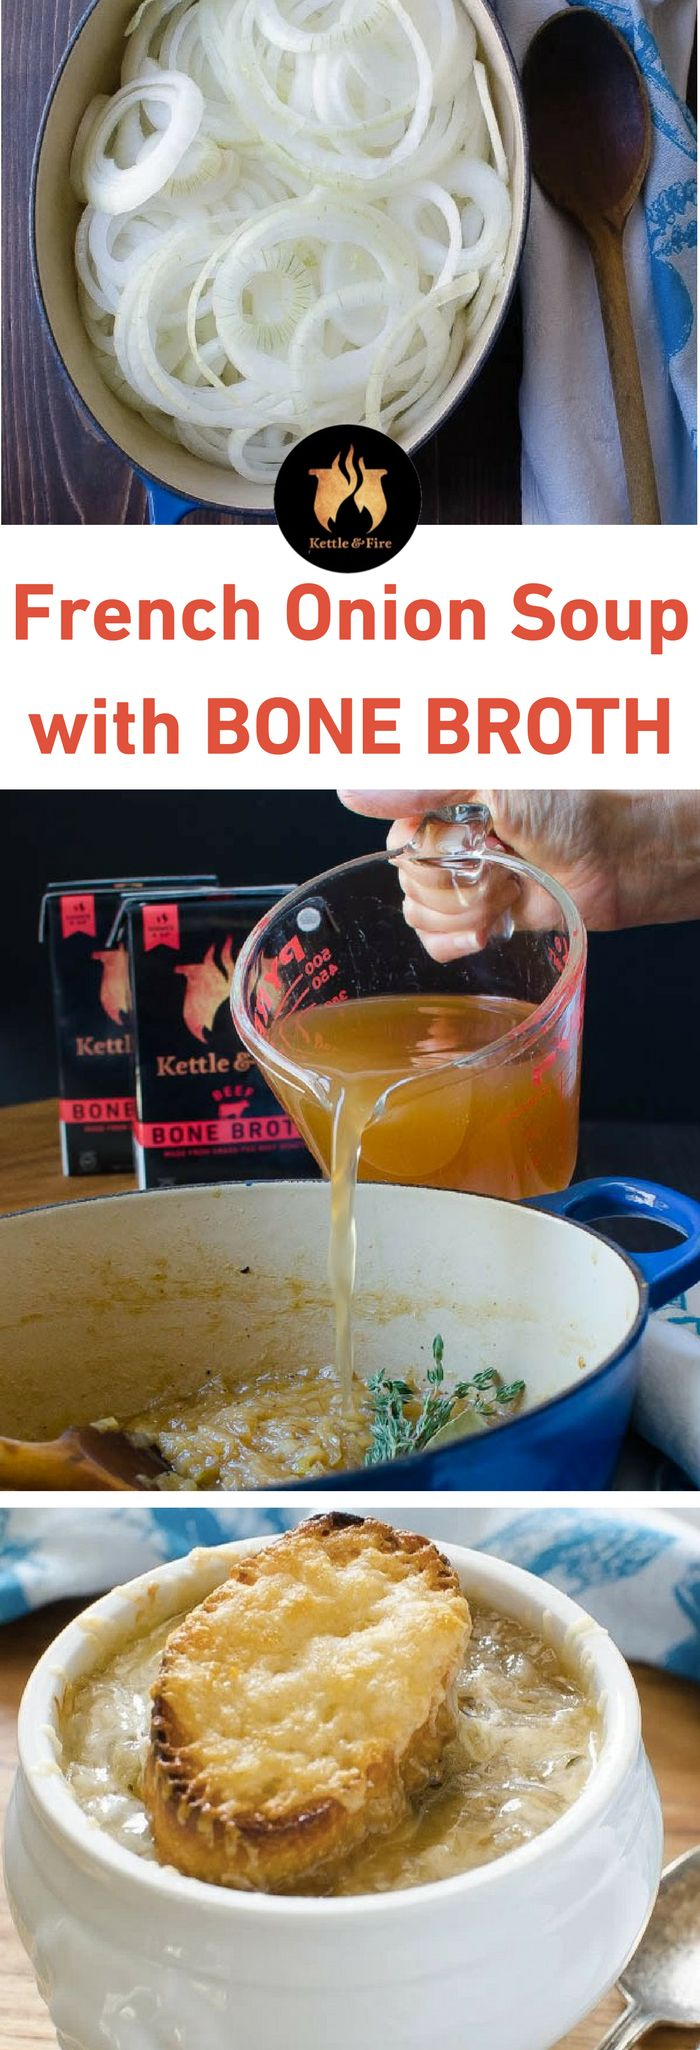 Homemade french onion soup made with organic bone broth!